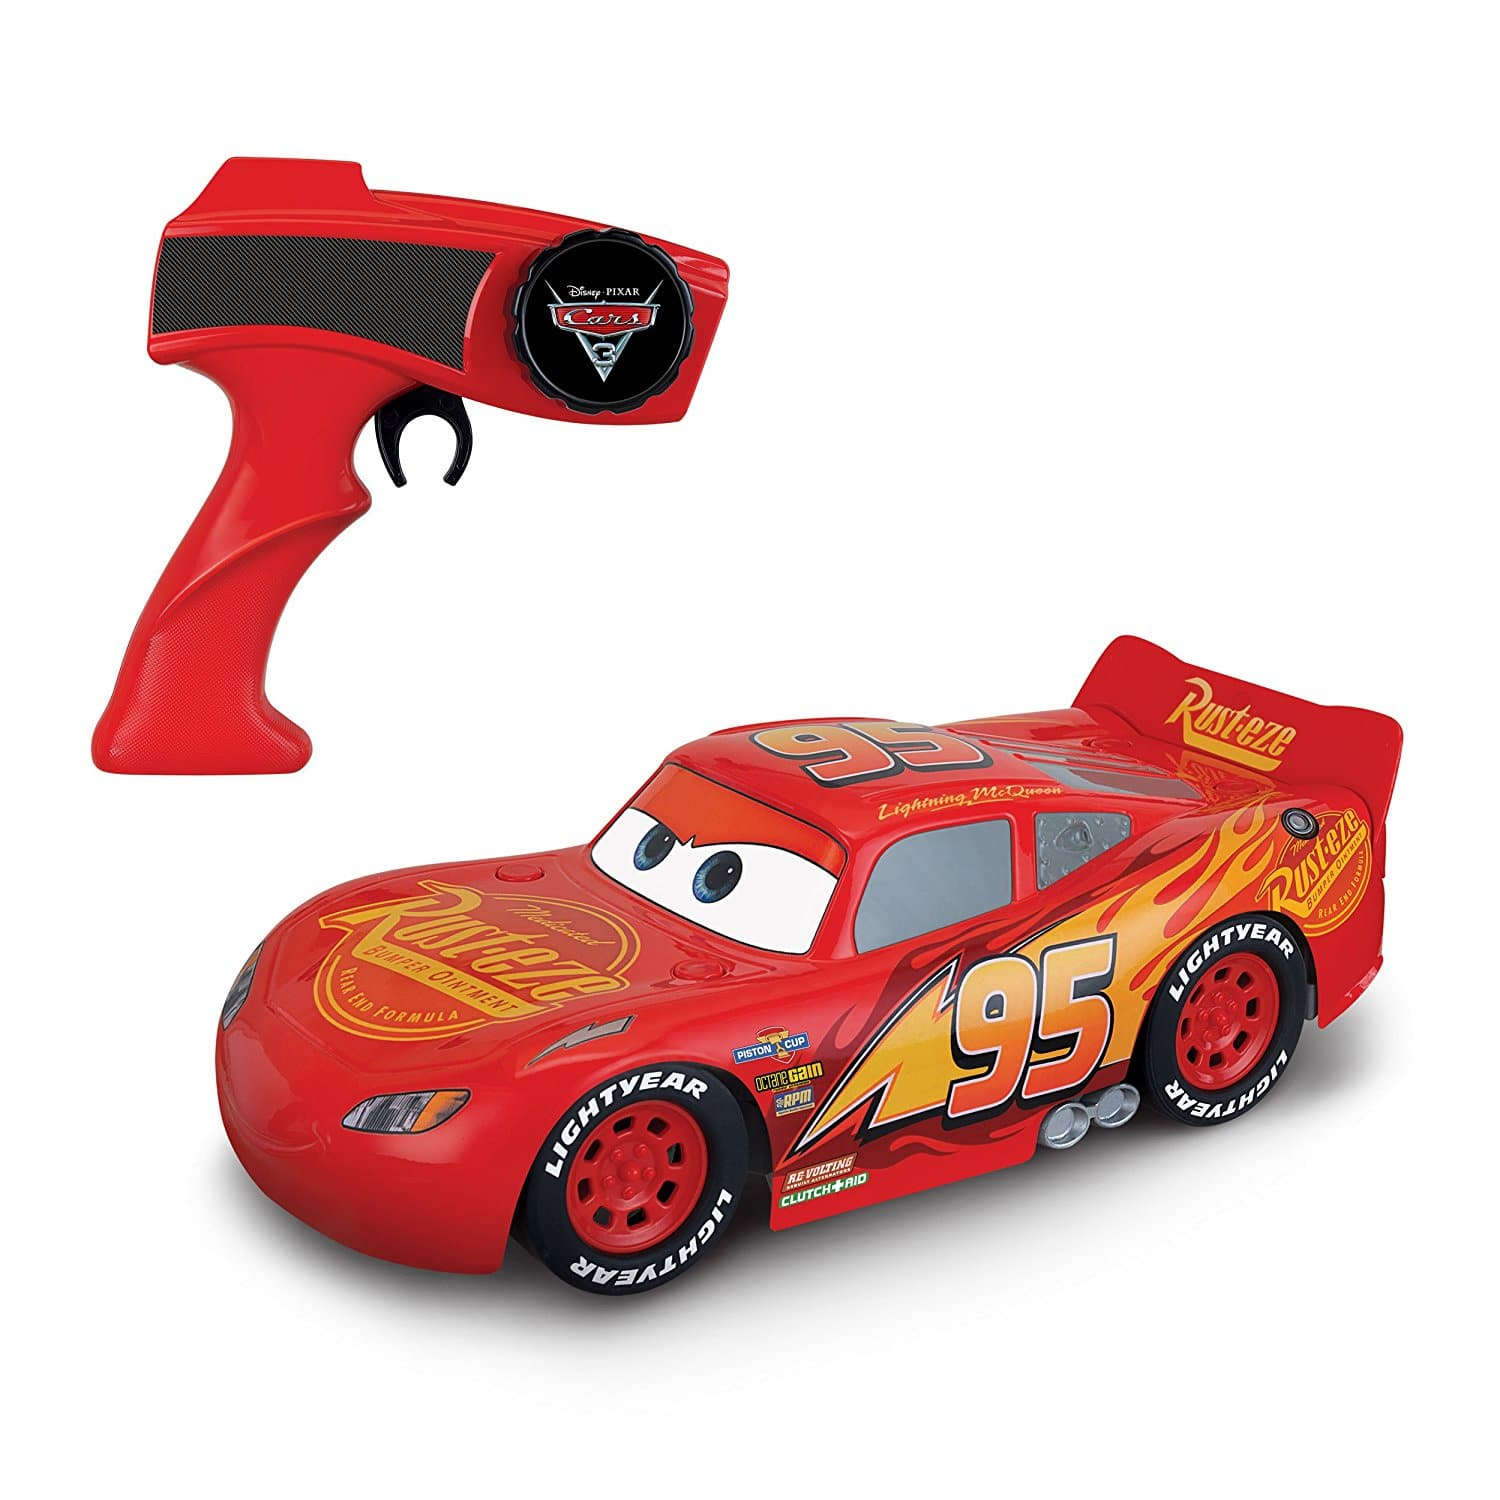 Cars Turbo Charge Lightning McQueen Vehicle Prime $21.48